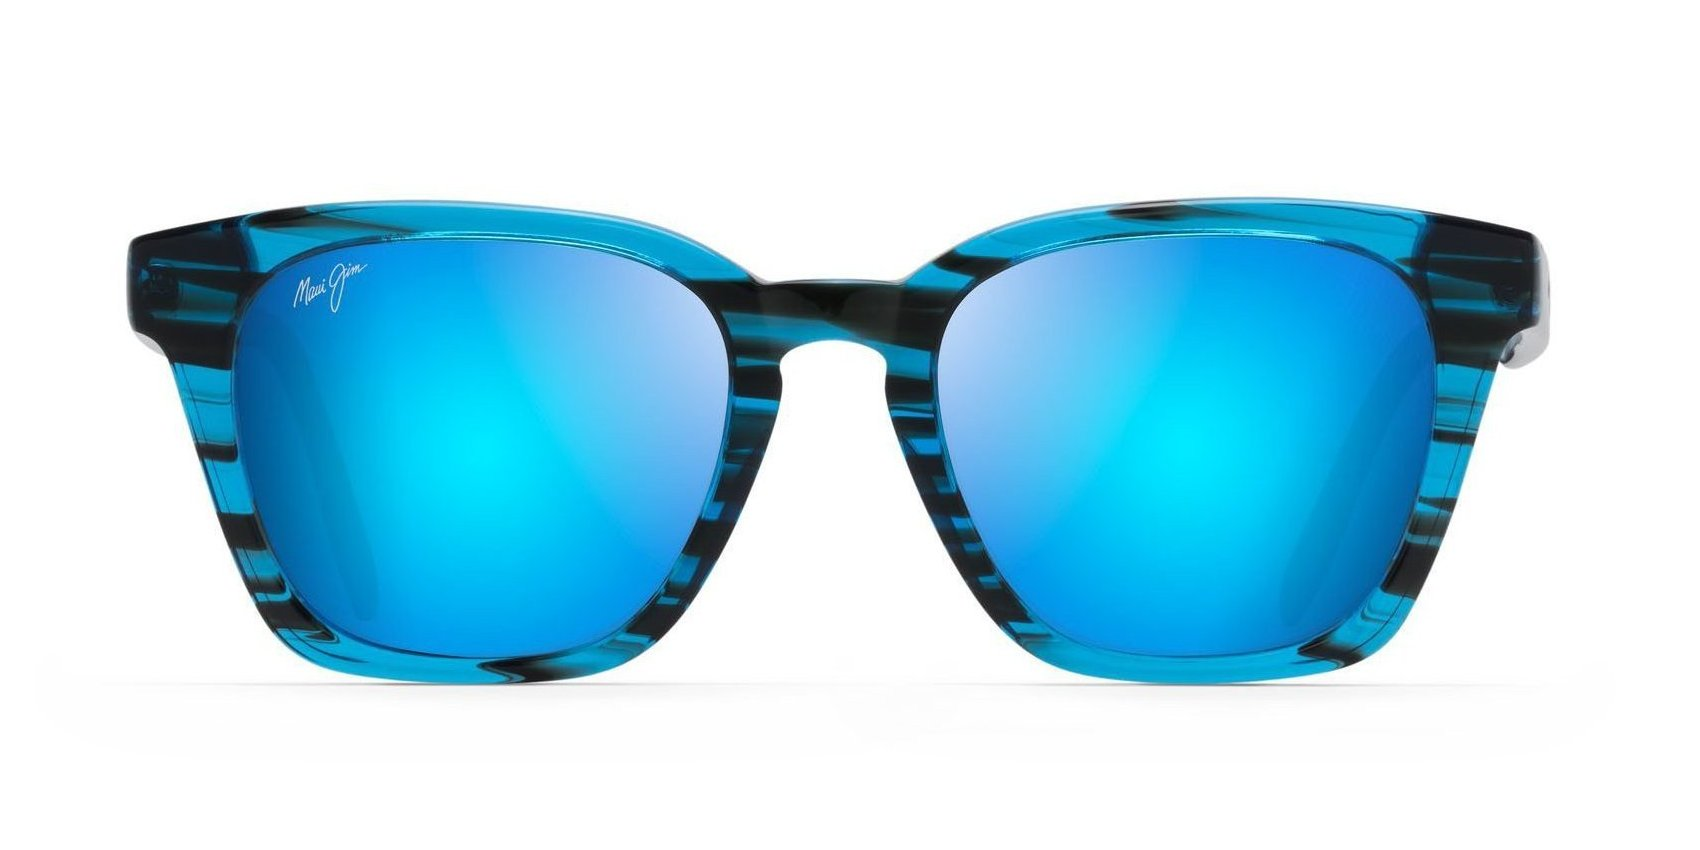 afd9ddfc480 Maui Jim Shave Ice 533 Sunglasses: Models B533-86, 533-04, H533-10 - Flight  Sunglasses